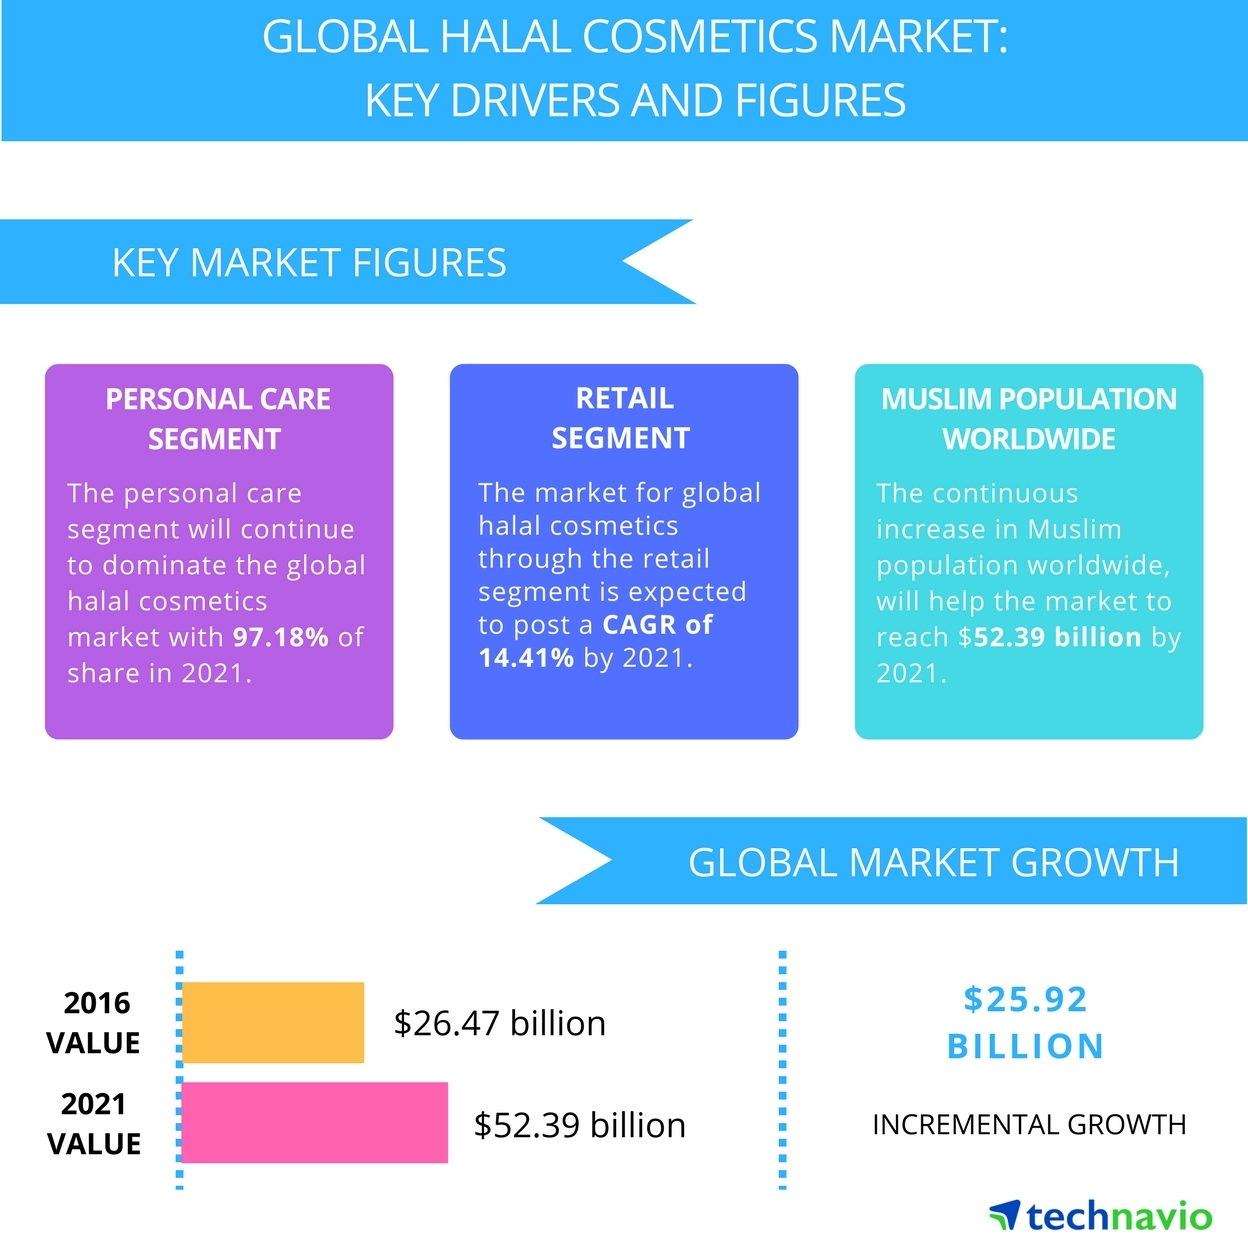 Top 3 Emerging Trends Impacting the Global Halal Cosmetics